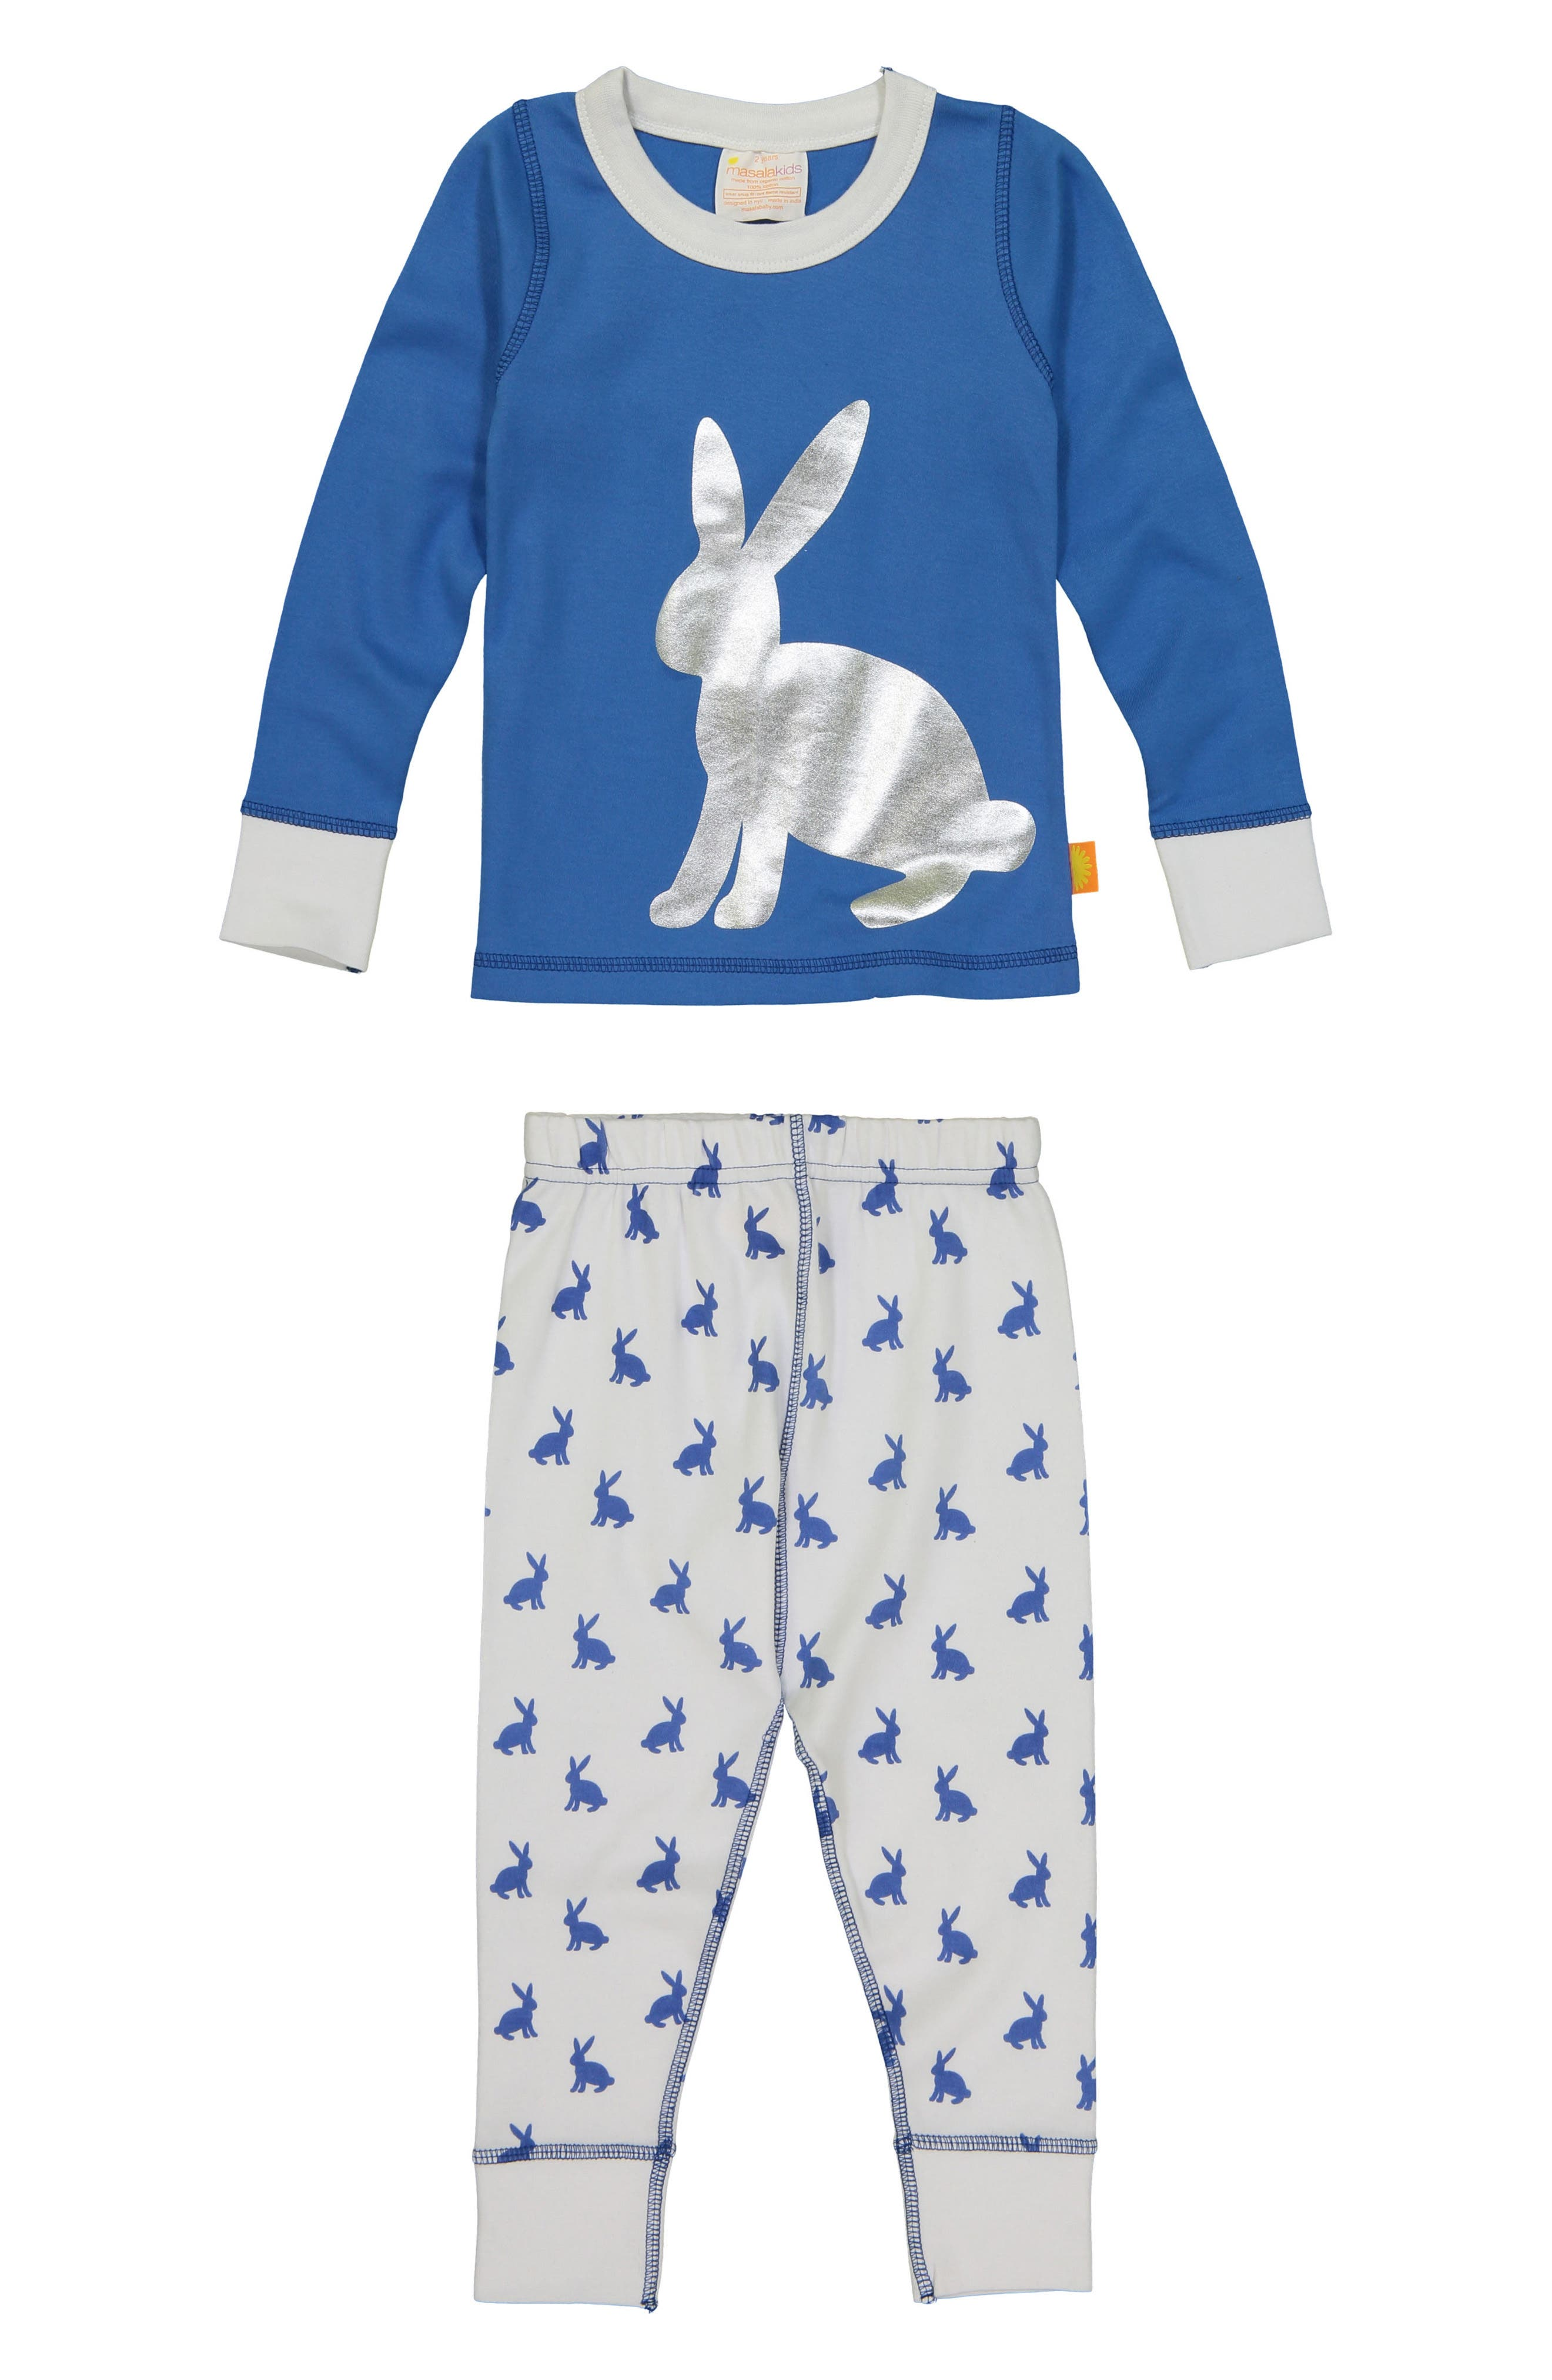 Main Image - Masala Baby Bunny Hop Fitted Two-Piece Pajamas (Toddler Boys, Little Boys & Big Boys)